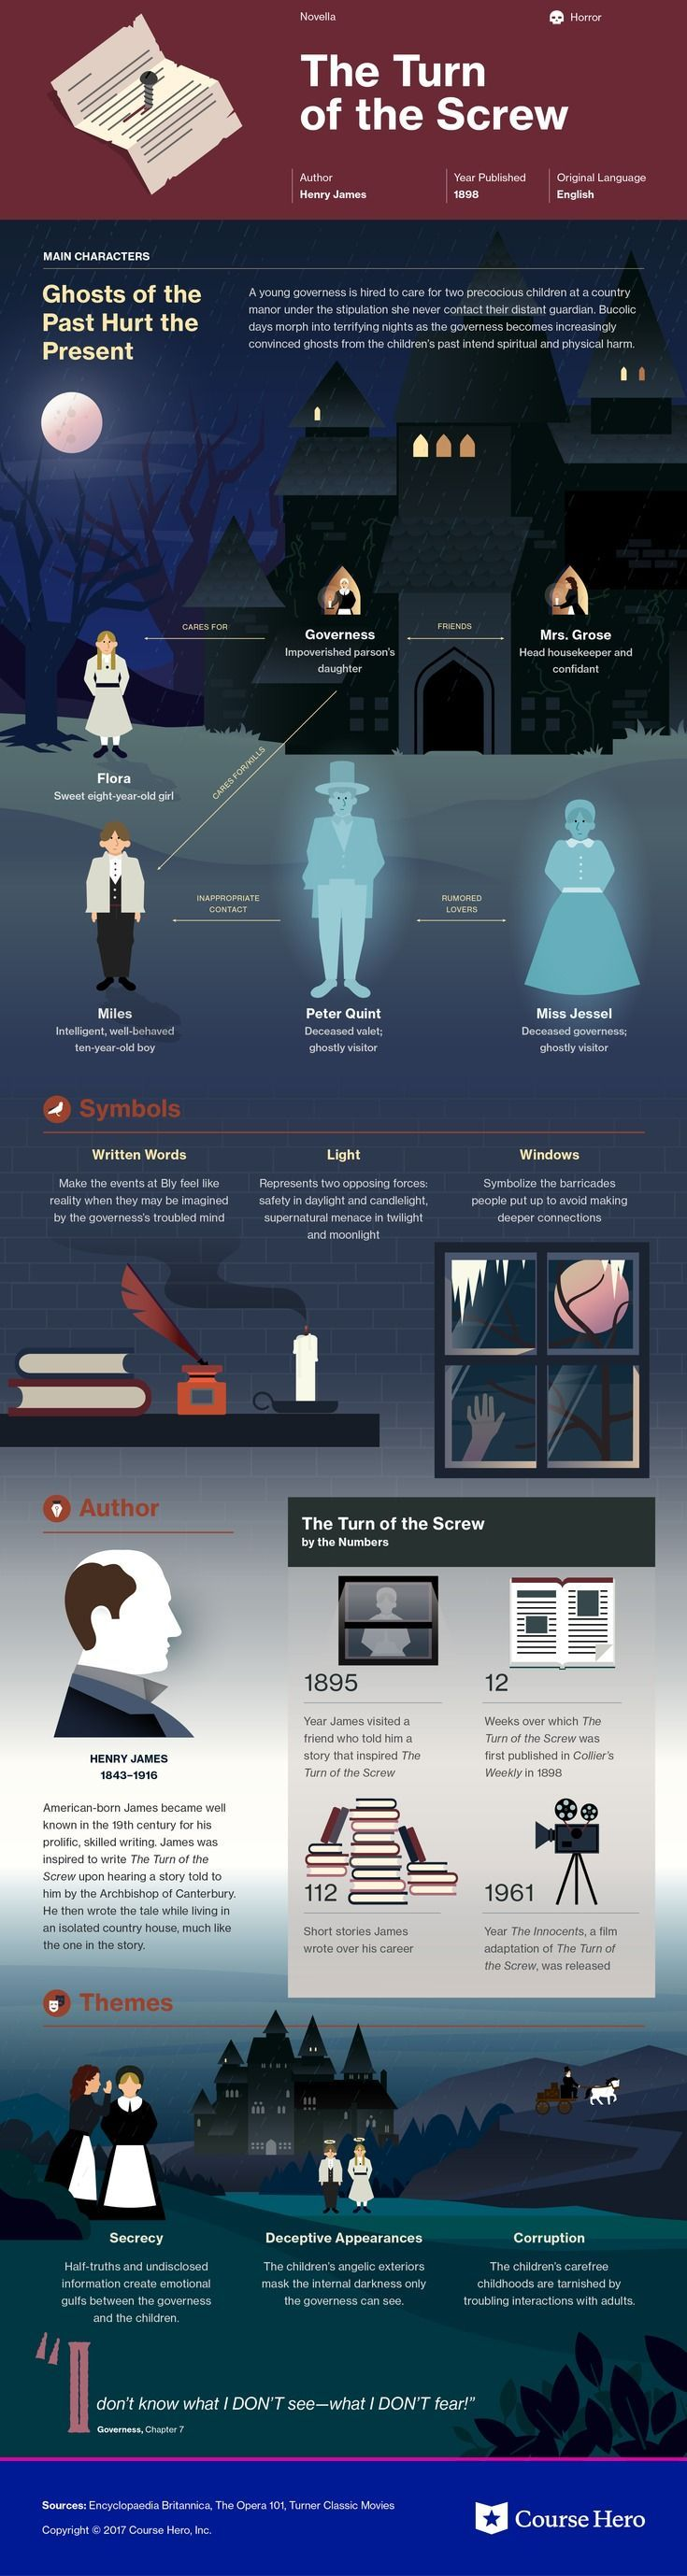 Henry James's The Turn of the Screw Infographic | Course Hero https://www.coursehero.com/lit/The-Turn-of-the-Screw/